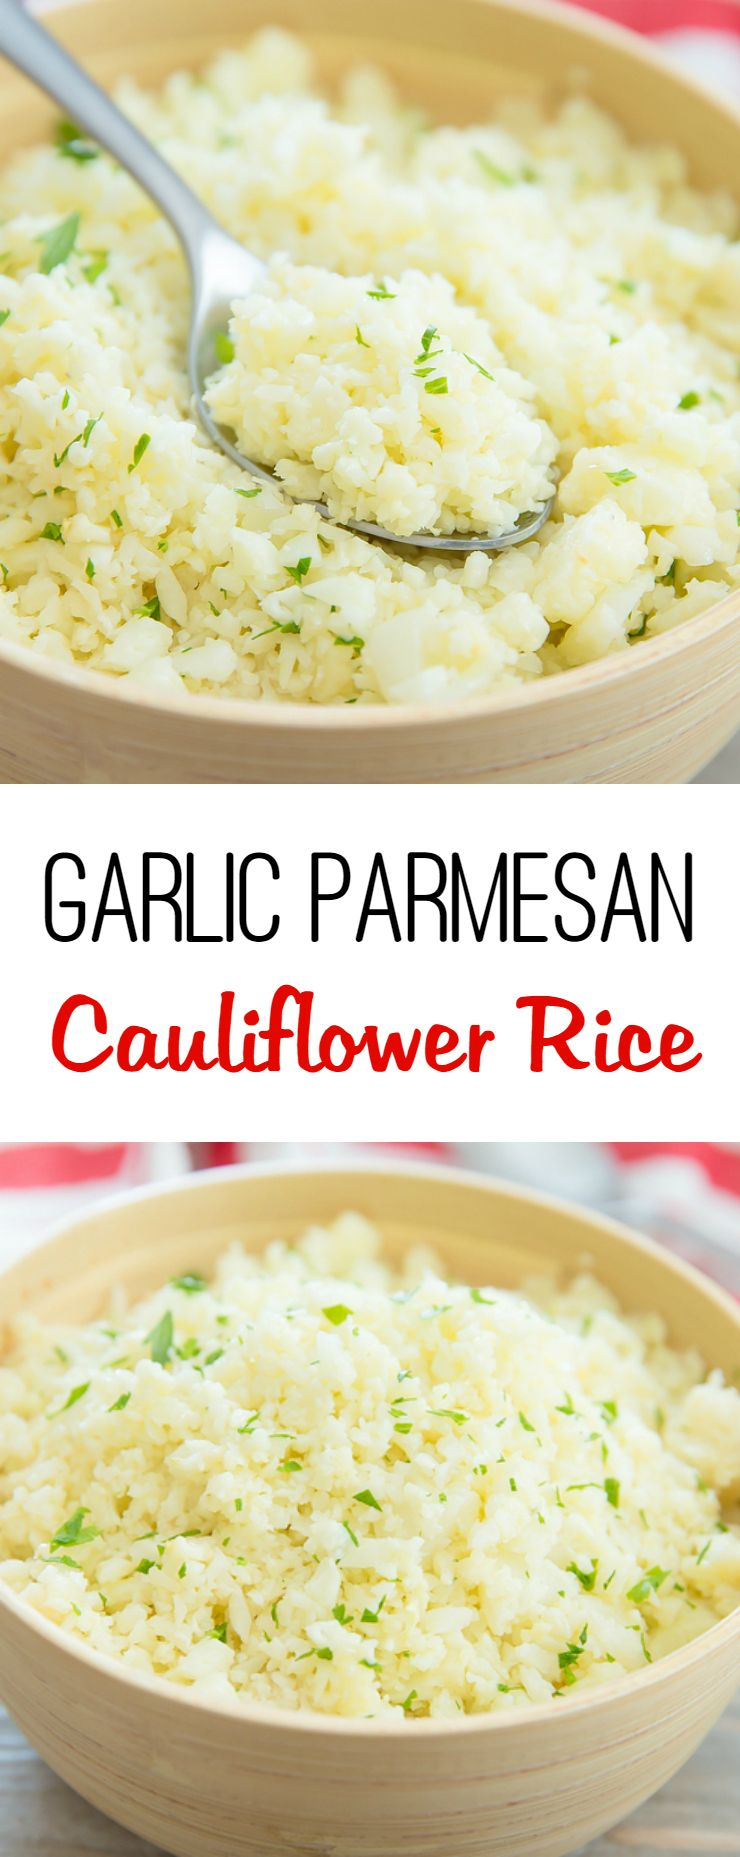 Garlic Parmesan Cauliflower Rice -   22 riced cauliflower recipes